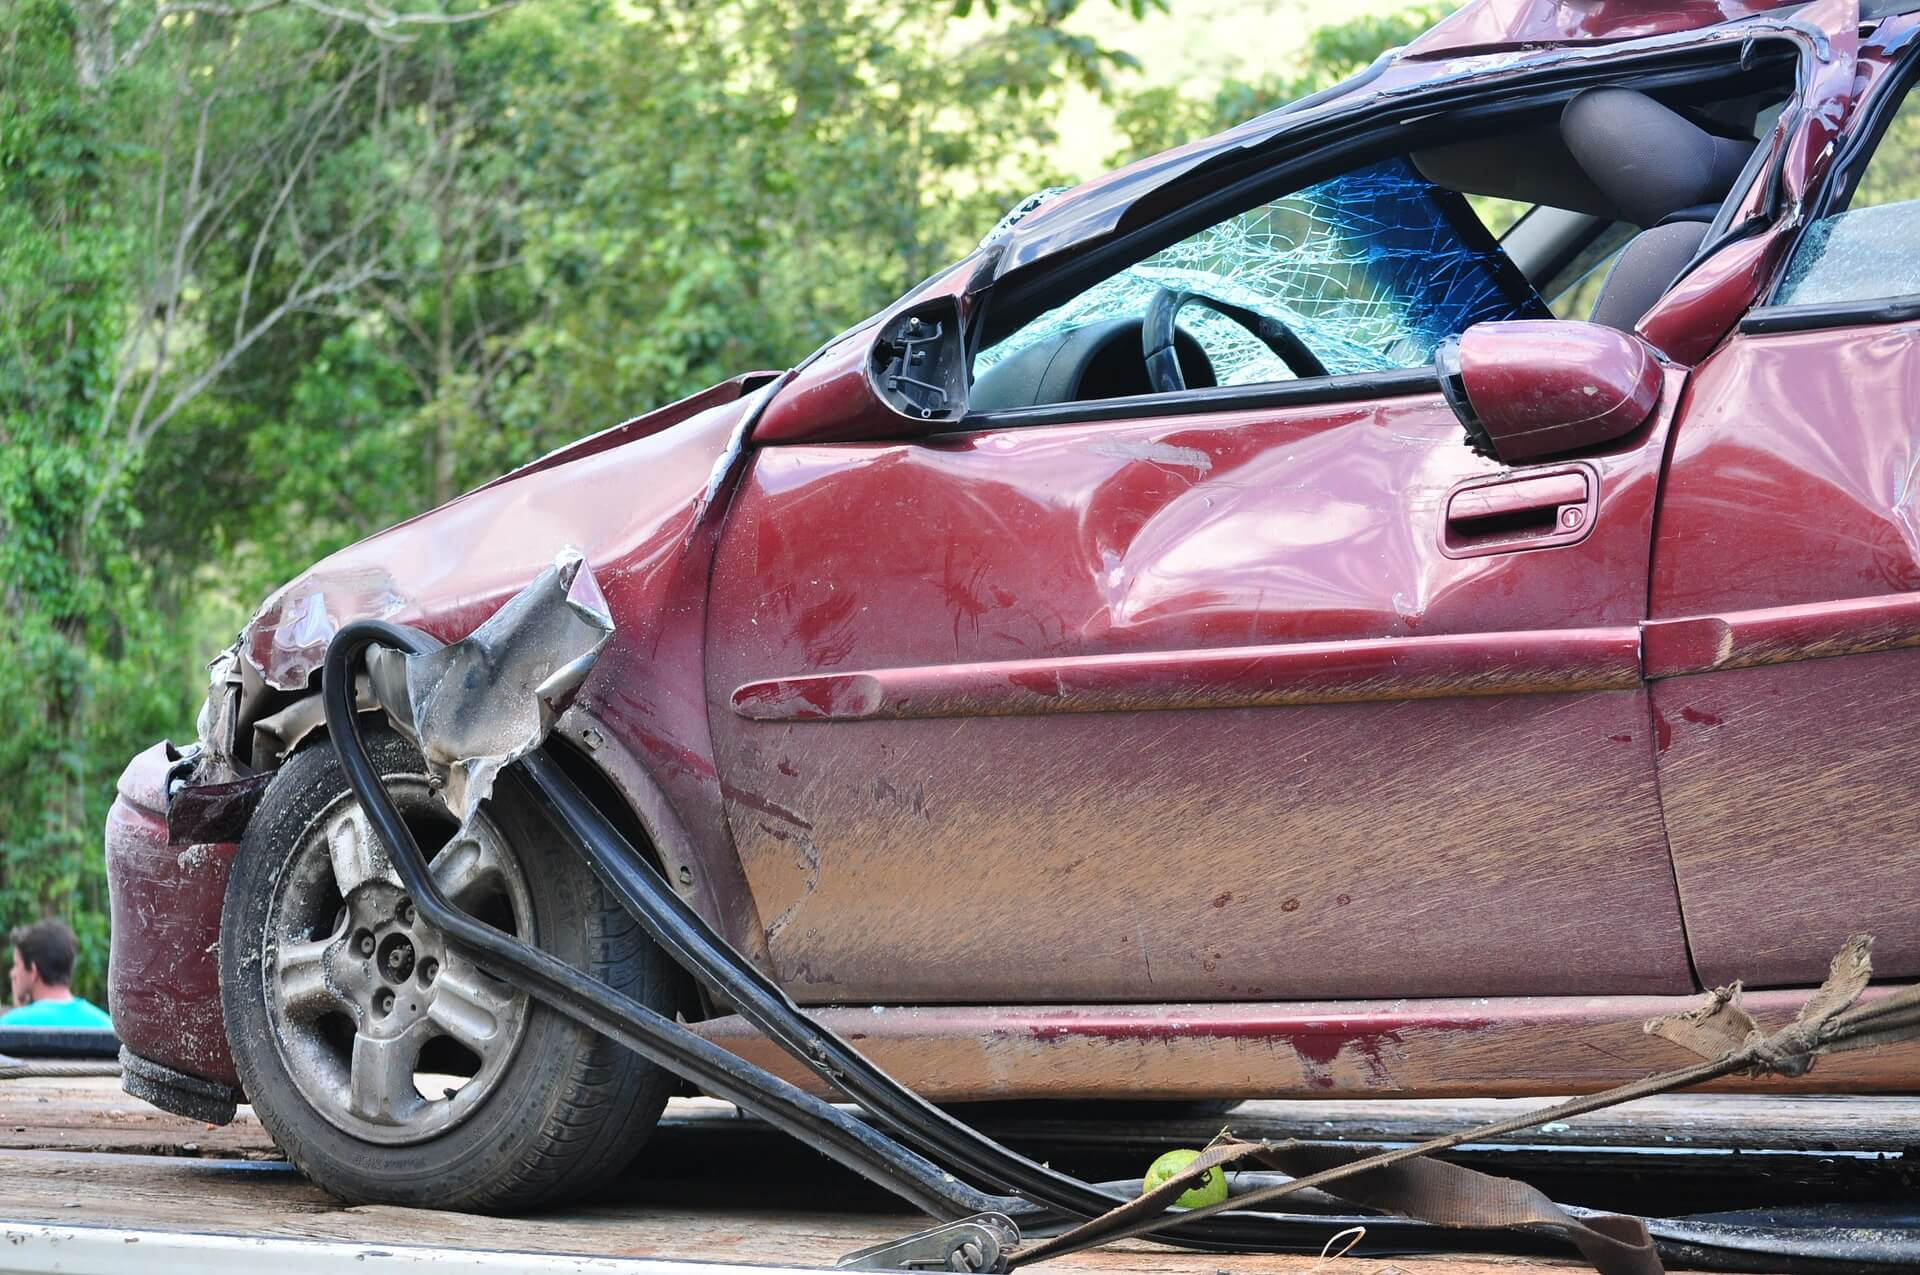 Friday Accident Leaves Woman Injured